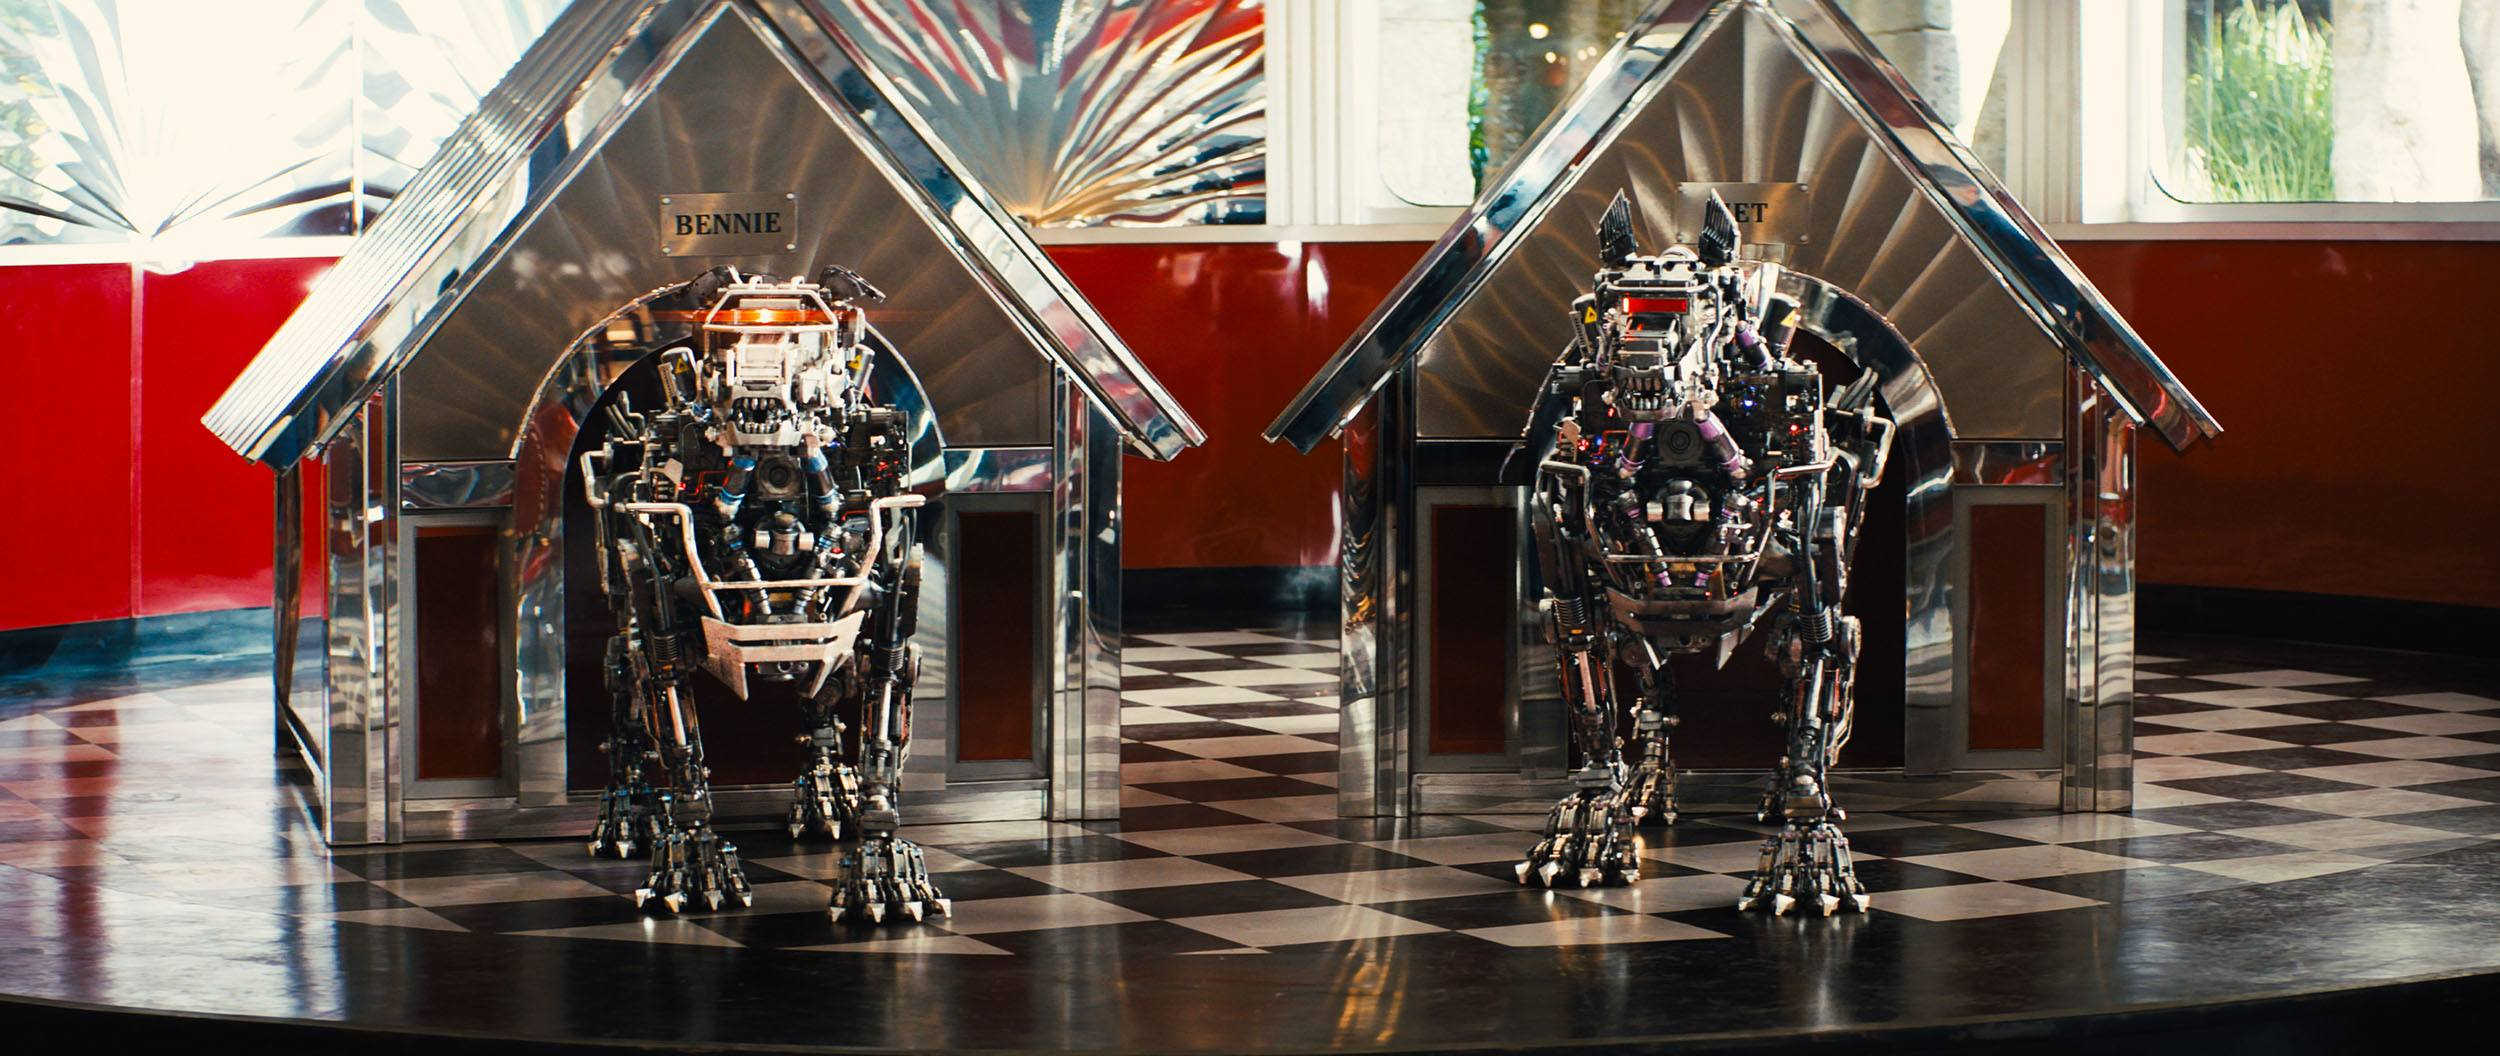 Inside the explosive visual effects of 'Kingsman: The